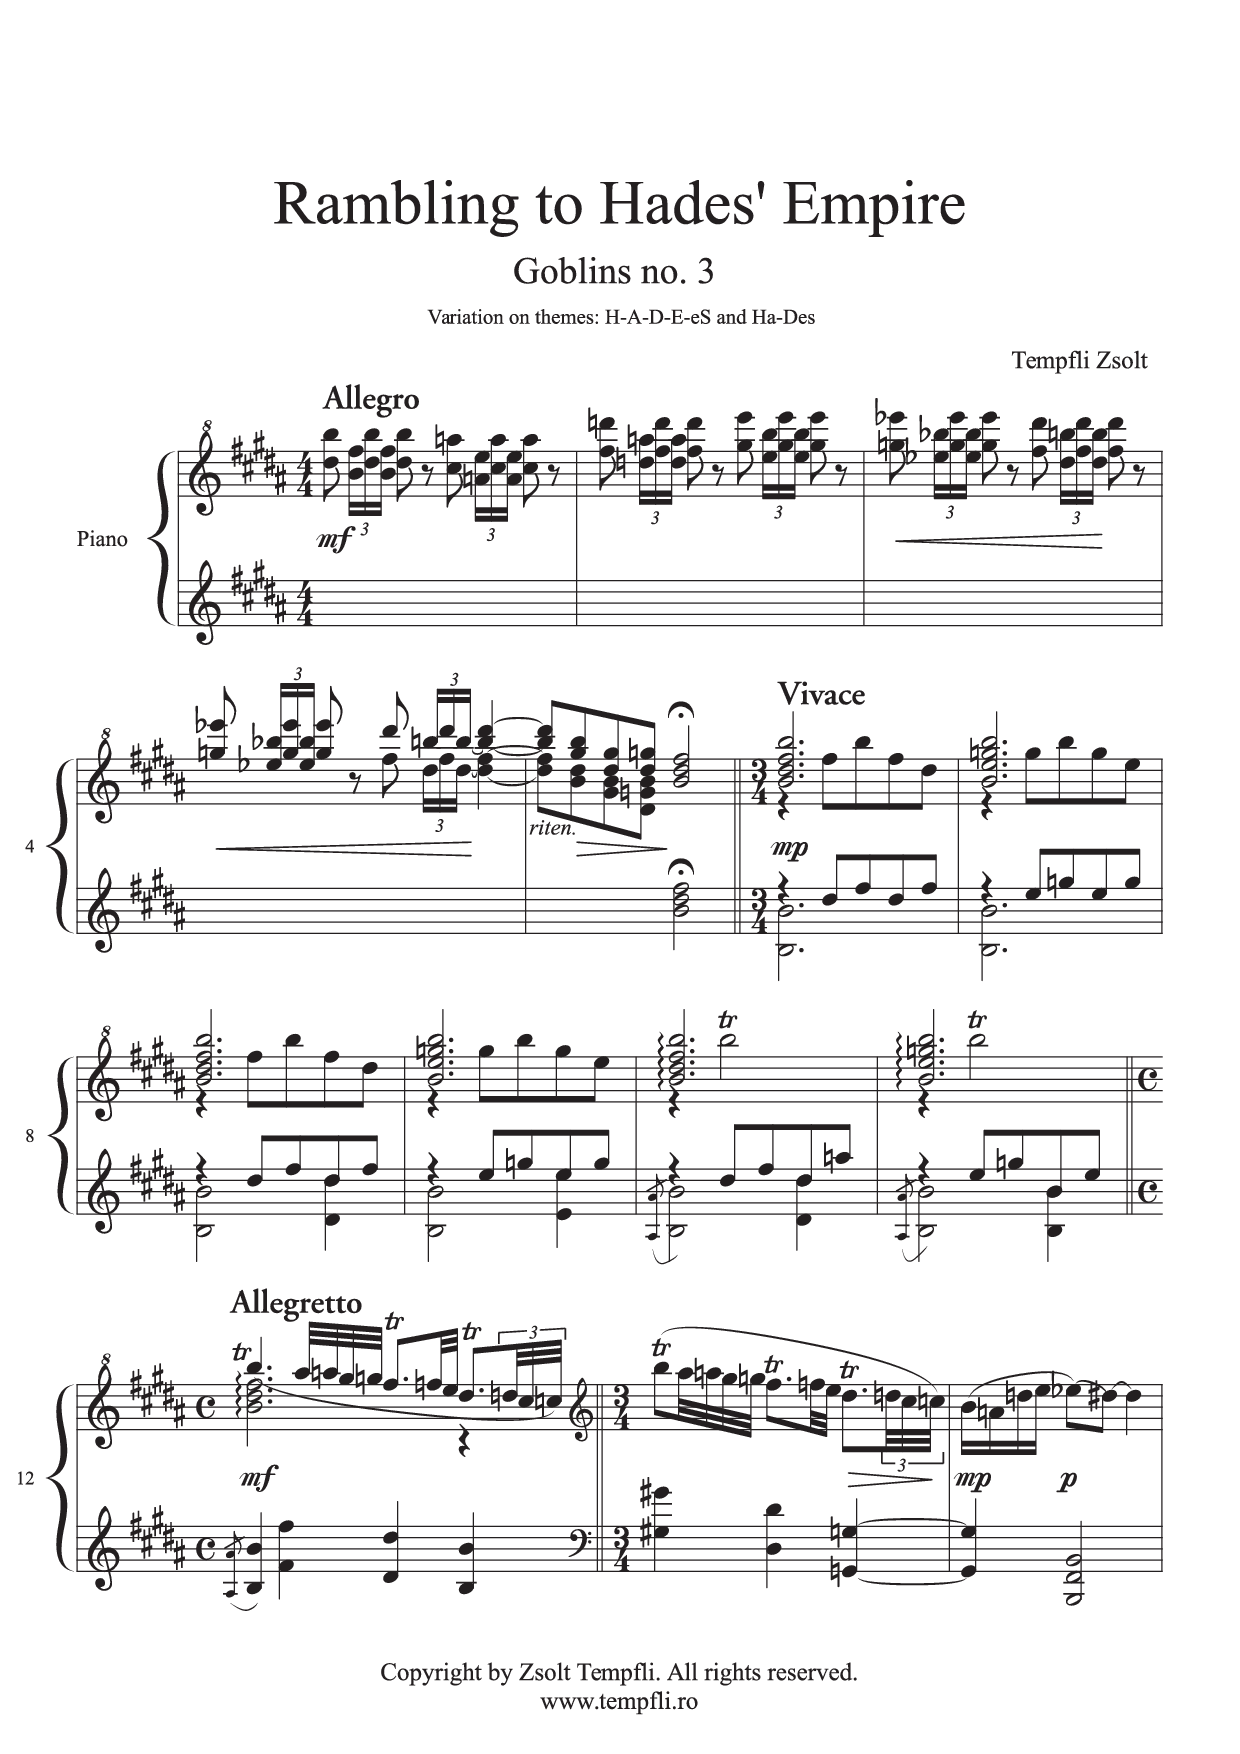 Zsolt Tempfli: Goblins - Rambling To Hades' Empire op. 15 no. 3 for piano